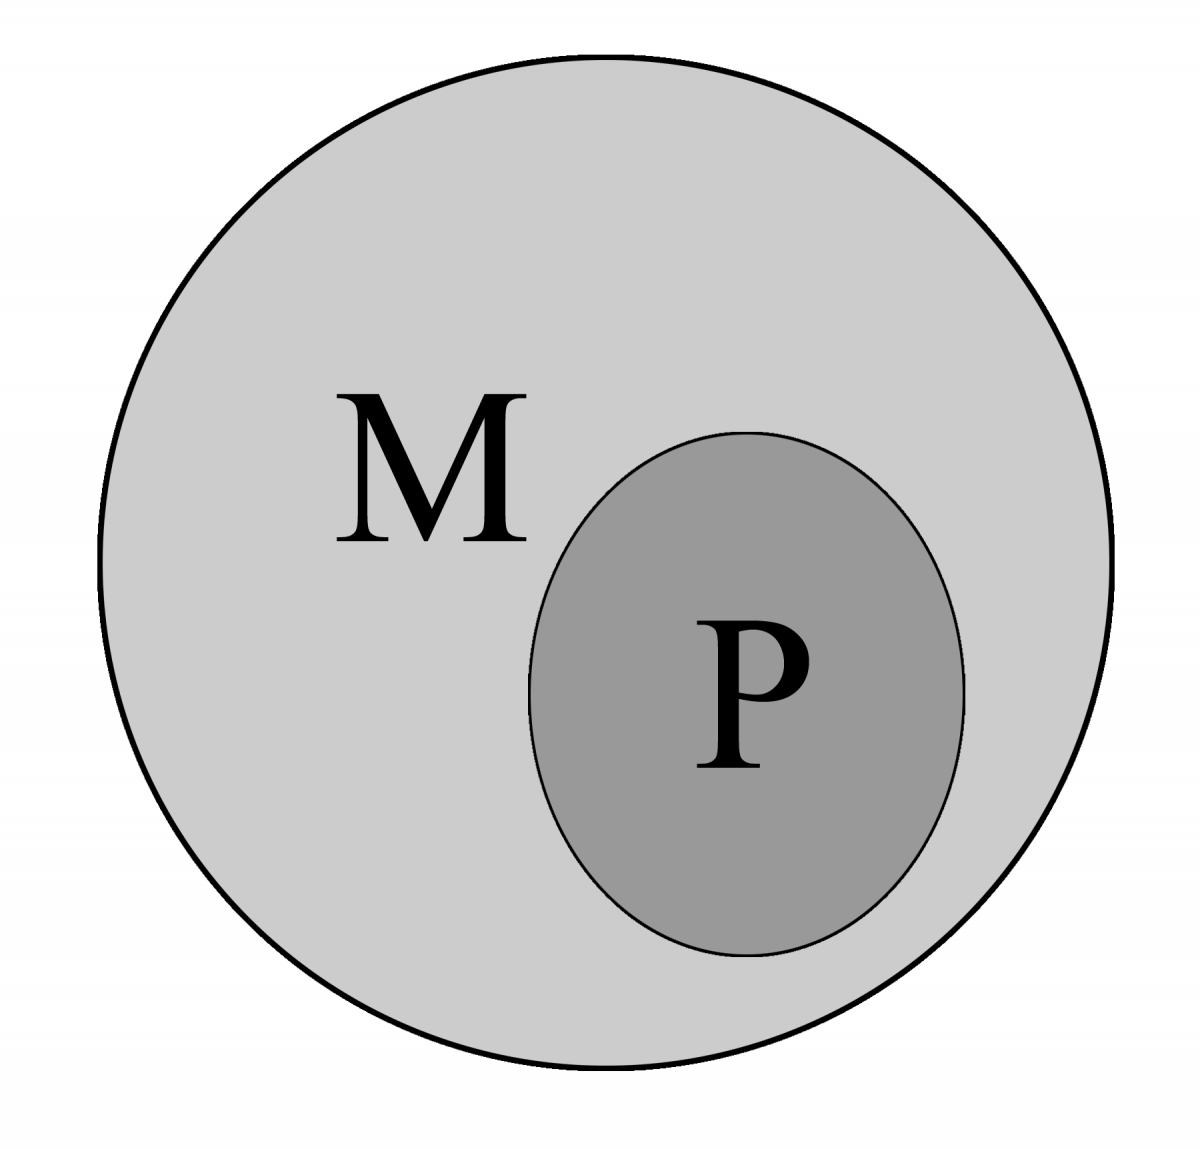 Figure 4. The Relationship between Methodological and Philosophical Naturalism.